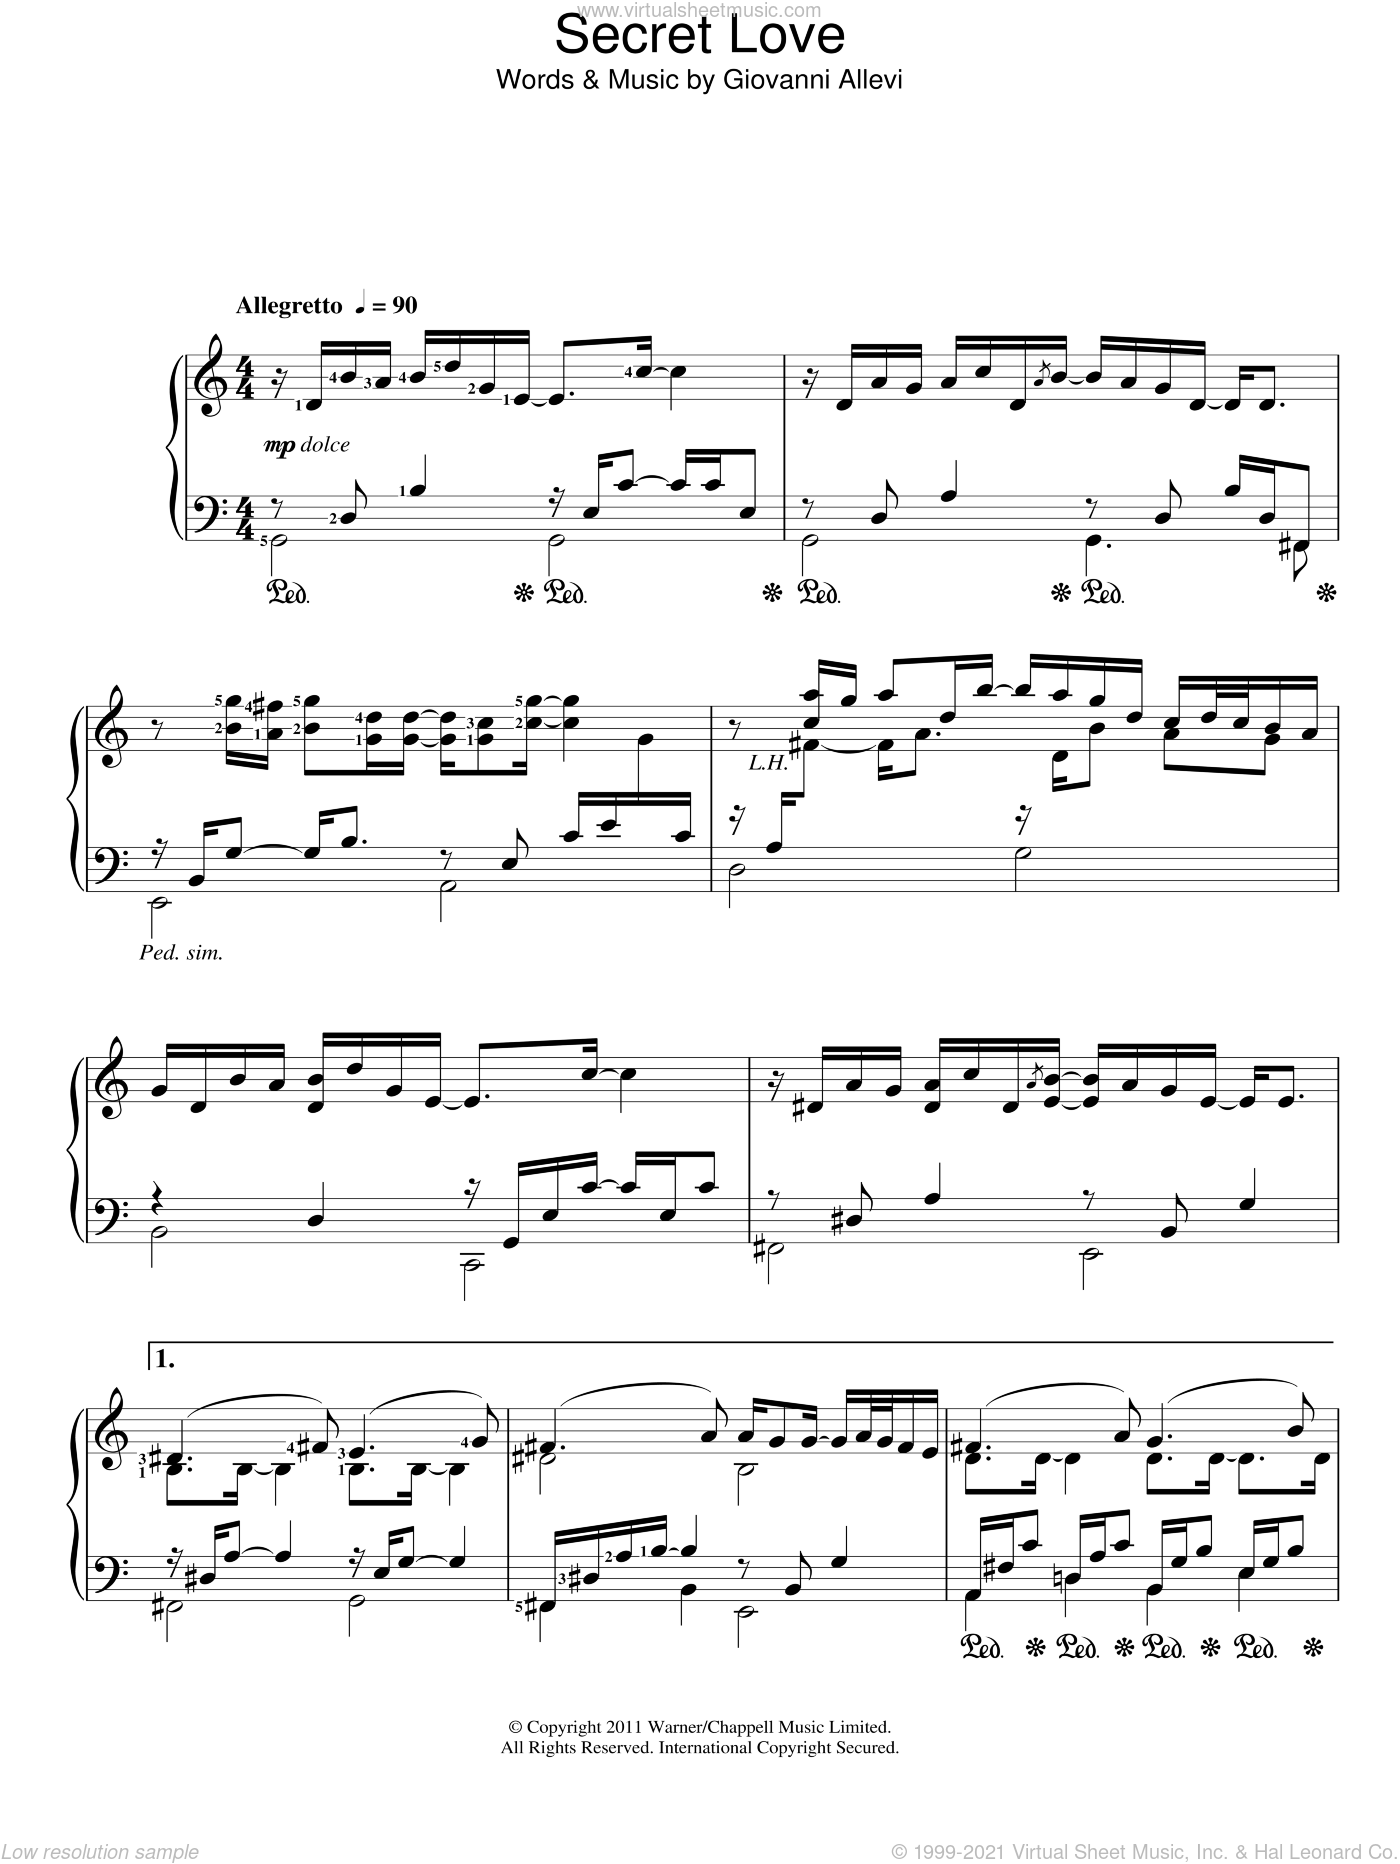 Secret Love sheet music for piano solo by Giovanni Allevi